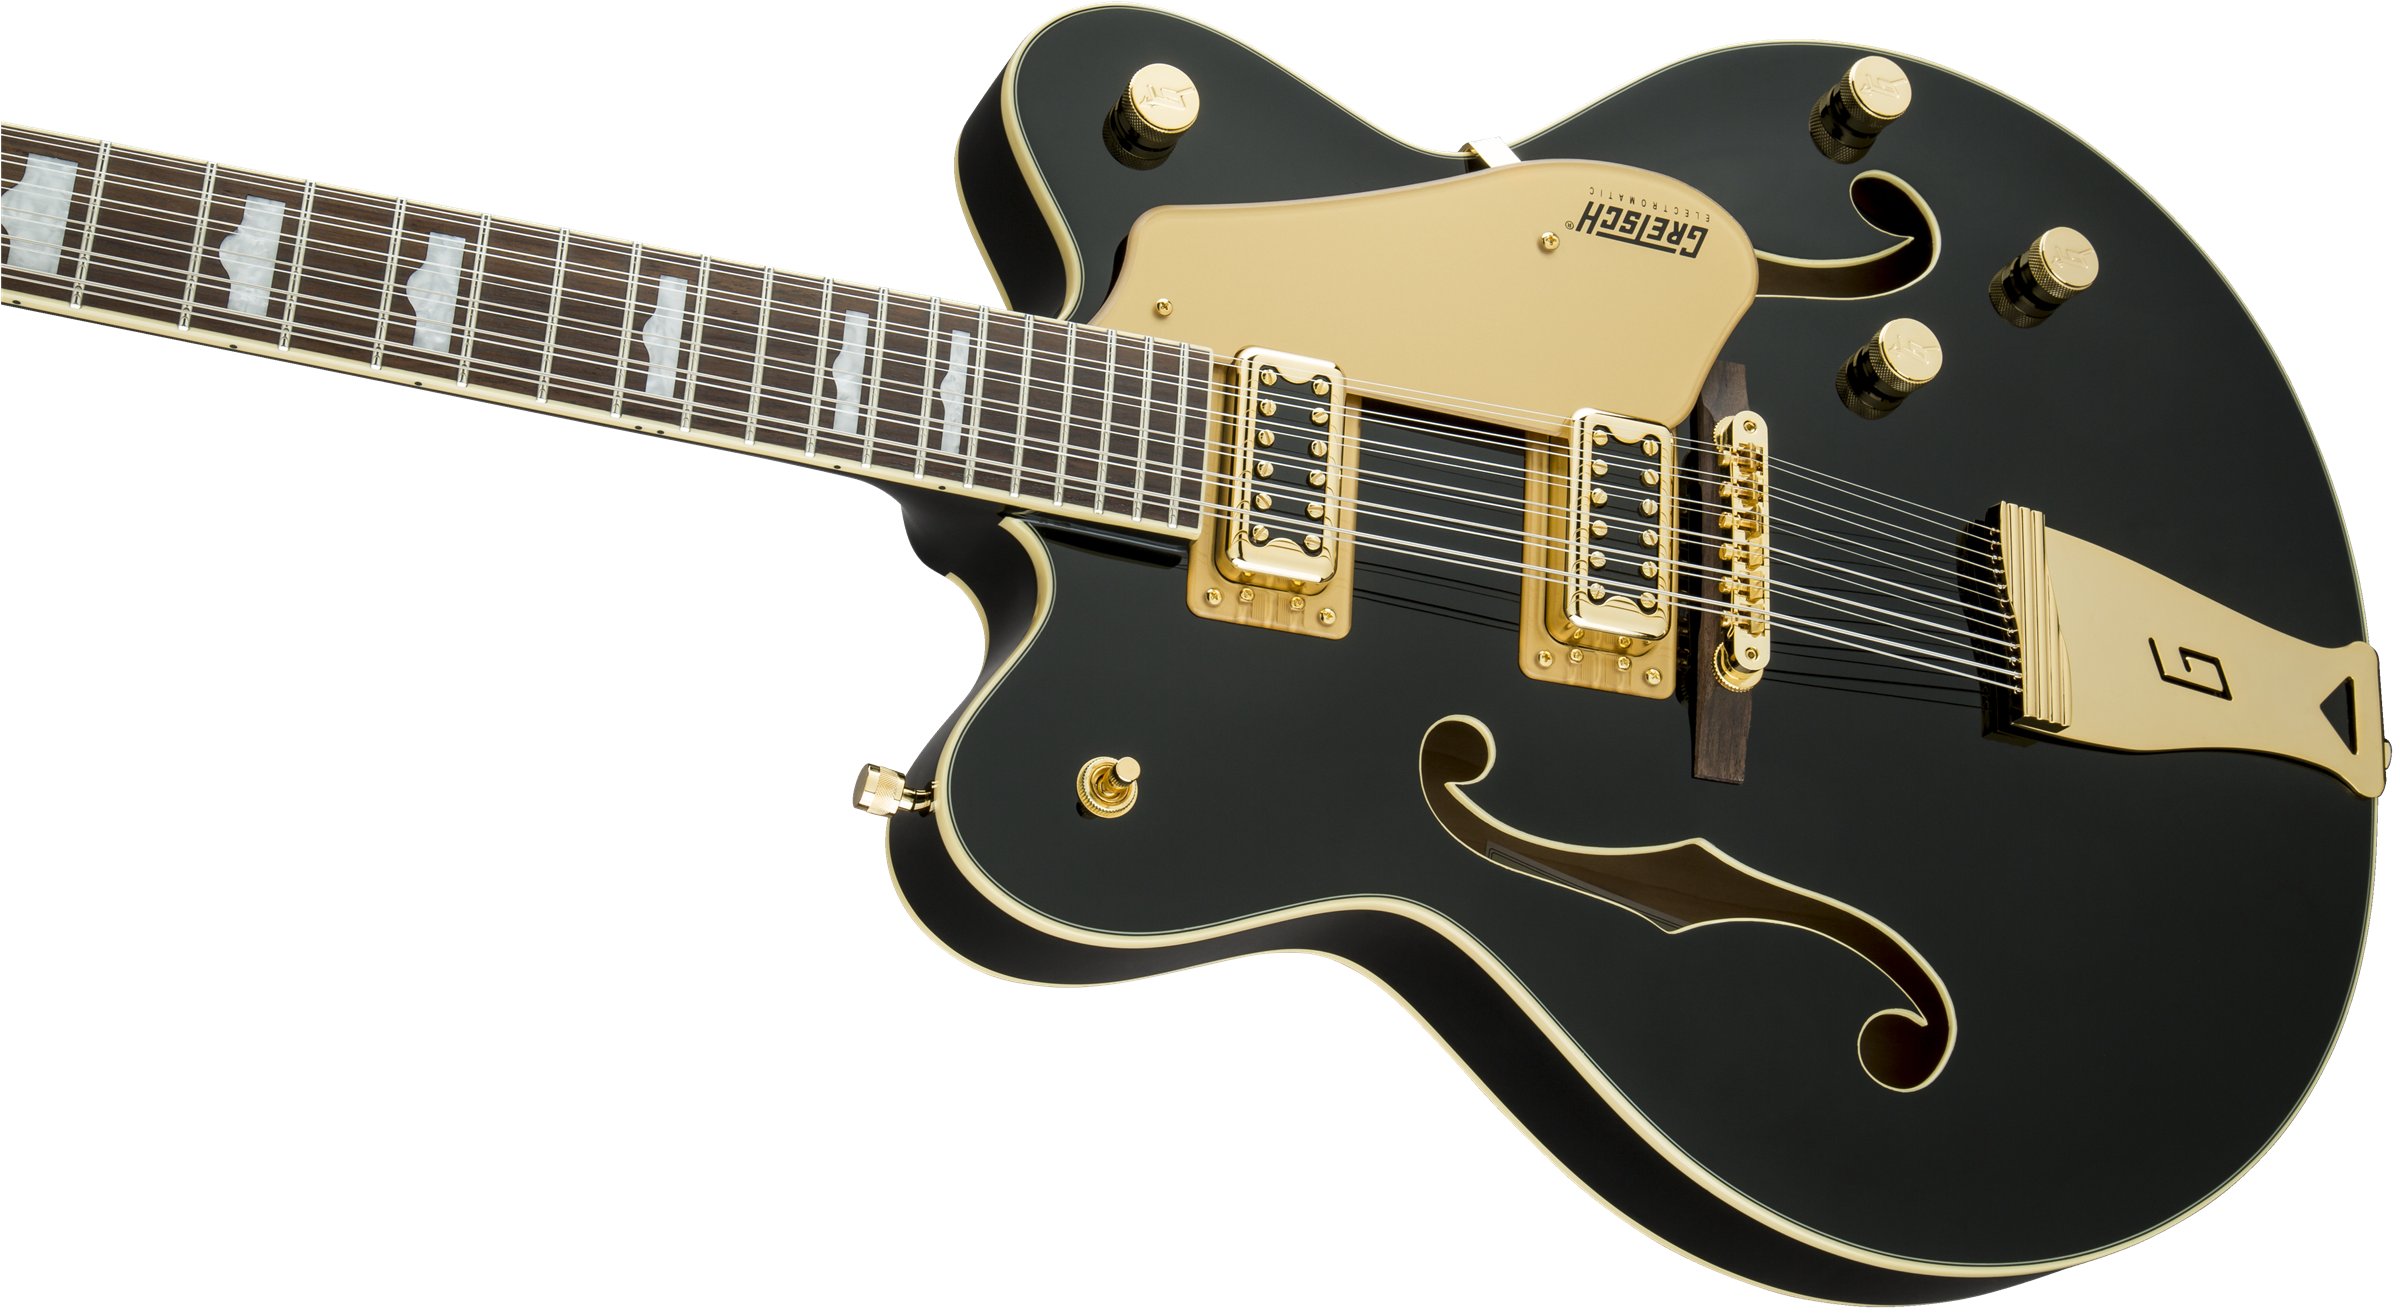 hollow body g5422g 12 electromatic hollow body double cut 12 string with gold hardware black. Black Bedroom Furniture Sets. Home Design Ideas